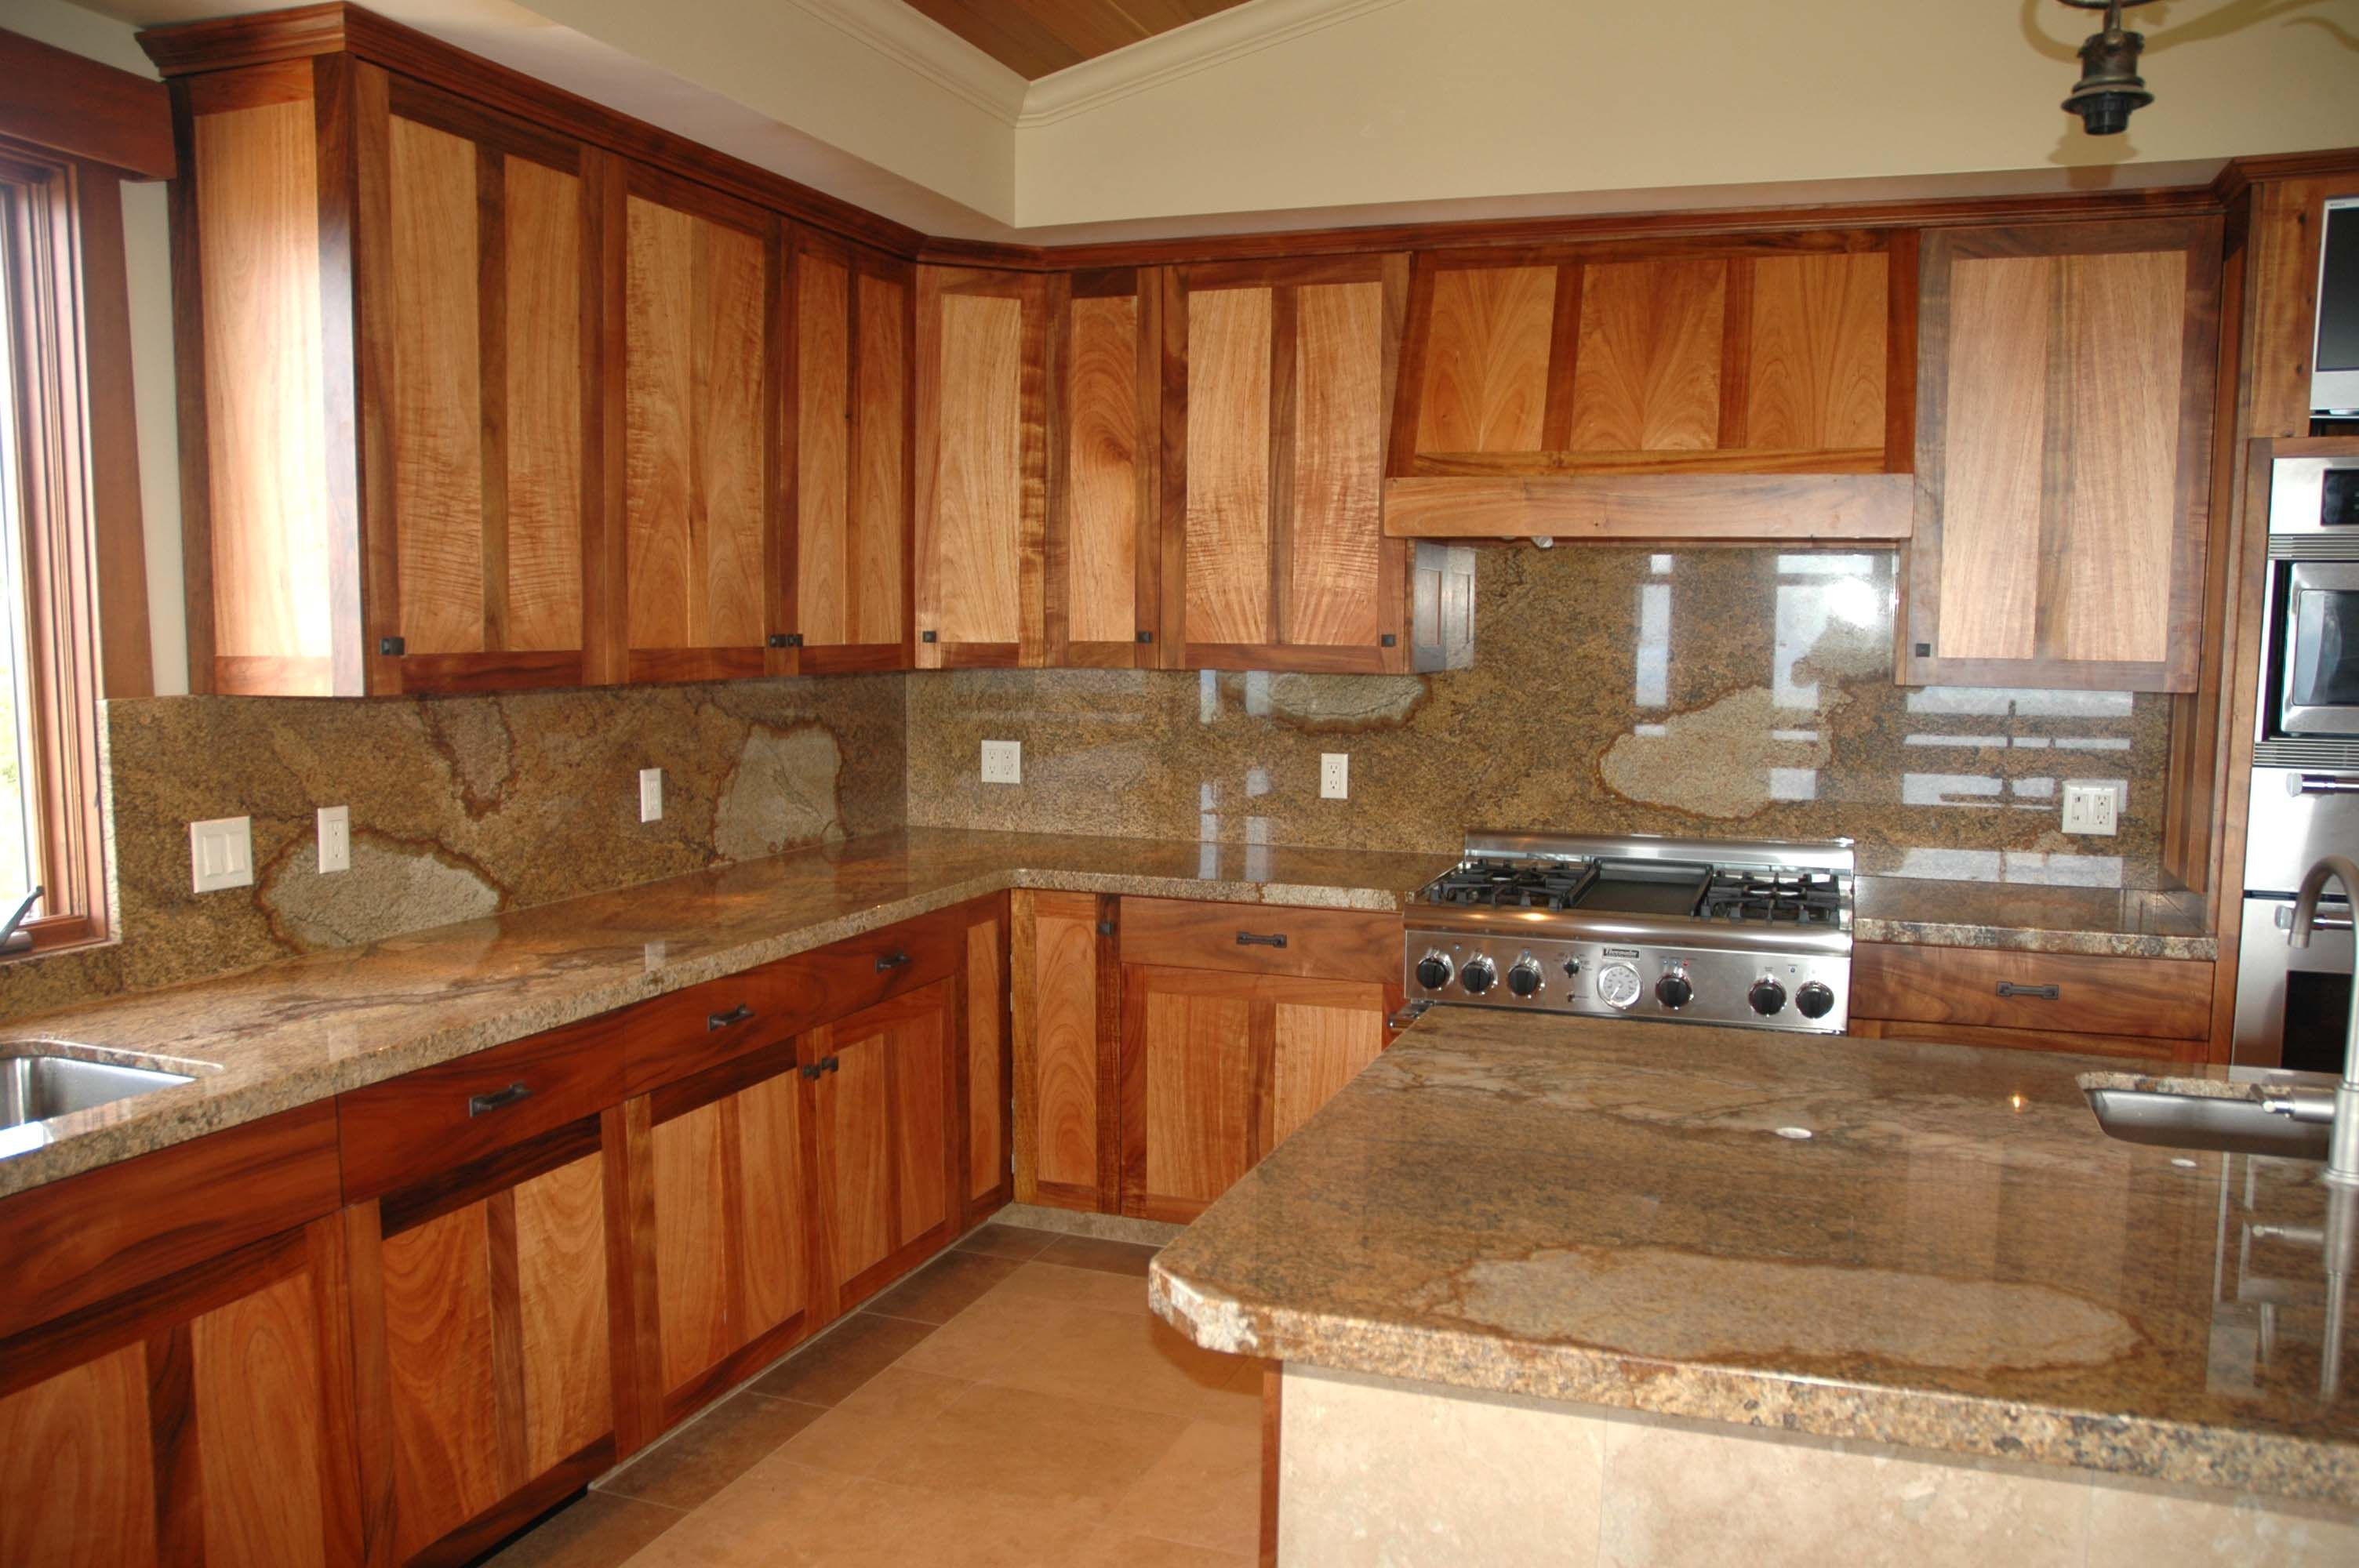 kitchen cabinets refinishing near me